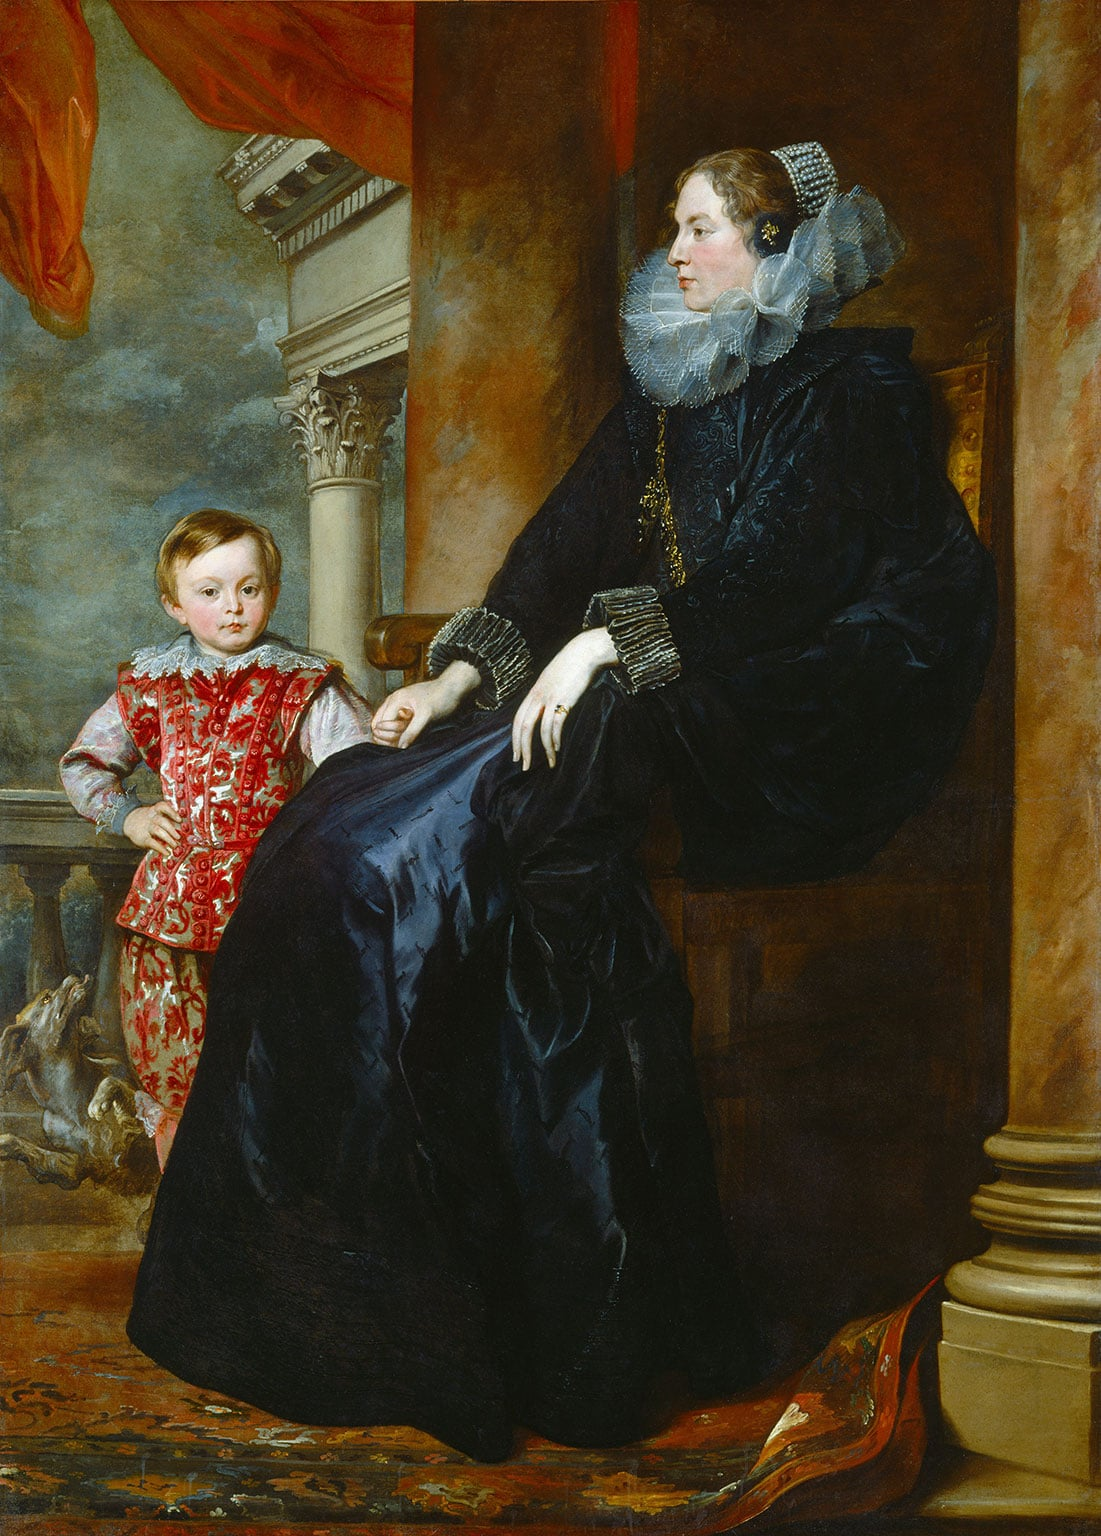 Sir Anthony Van Dyck, A Genoese Noblewoman and Her Son, c. 1626